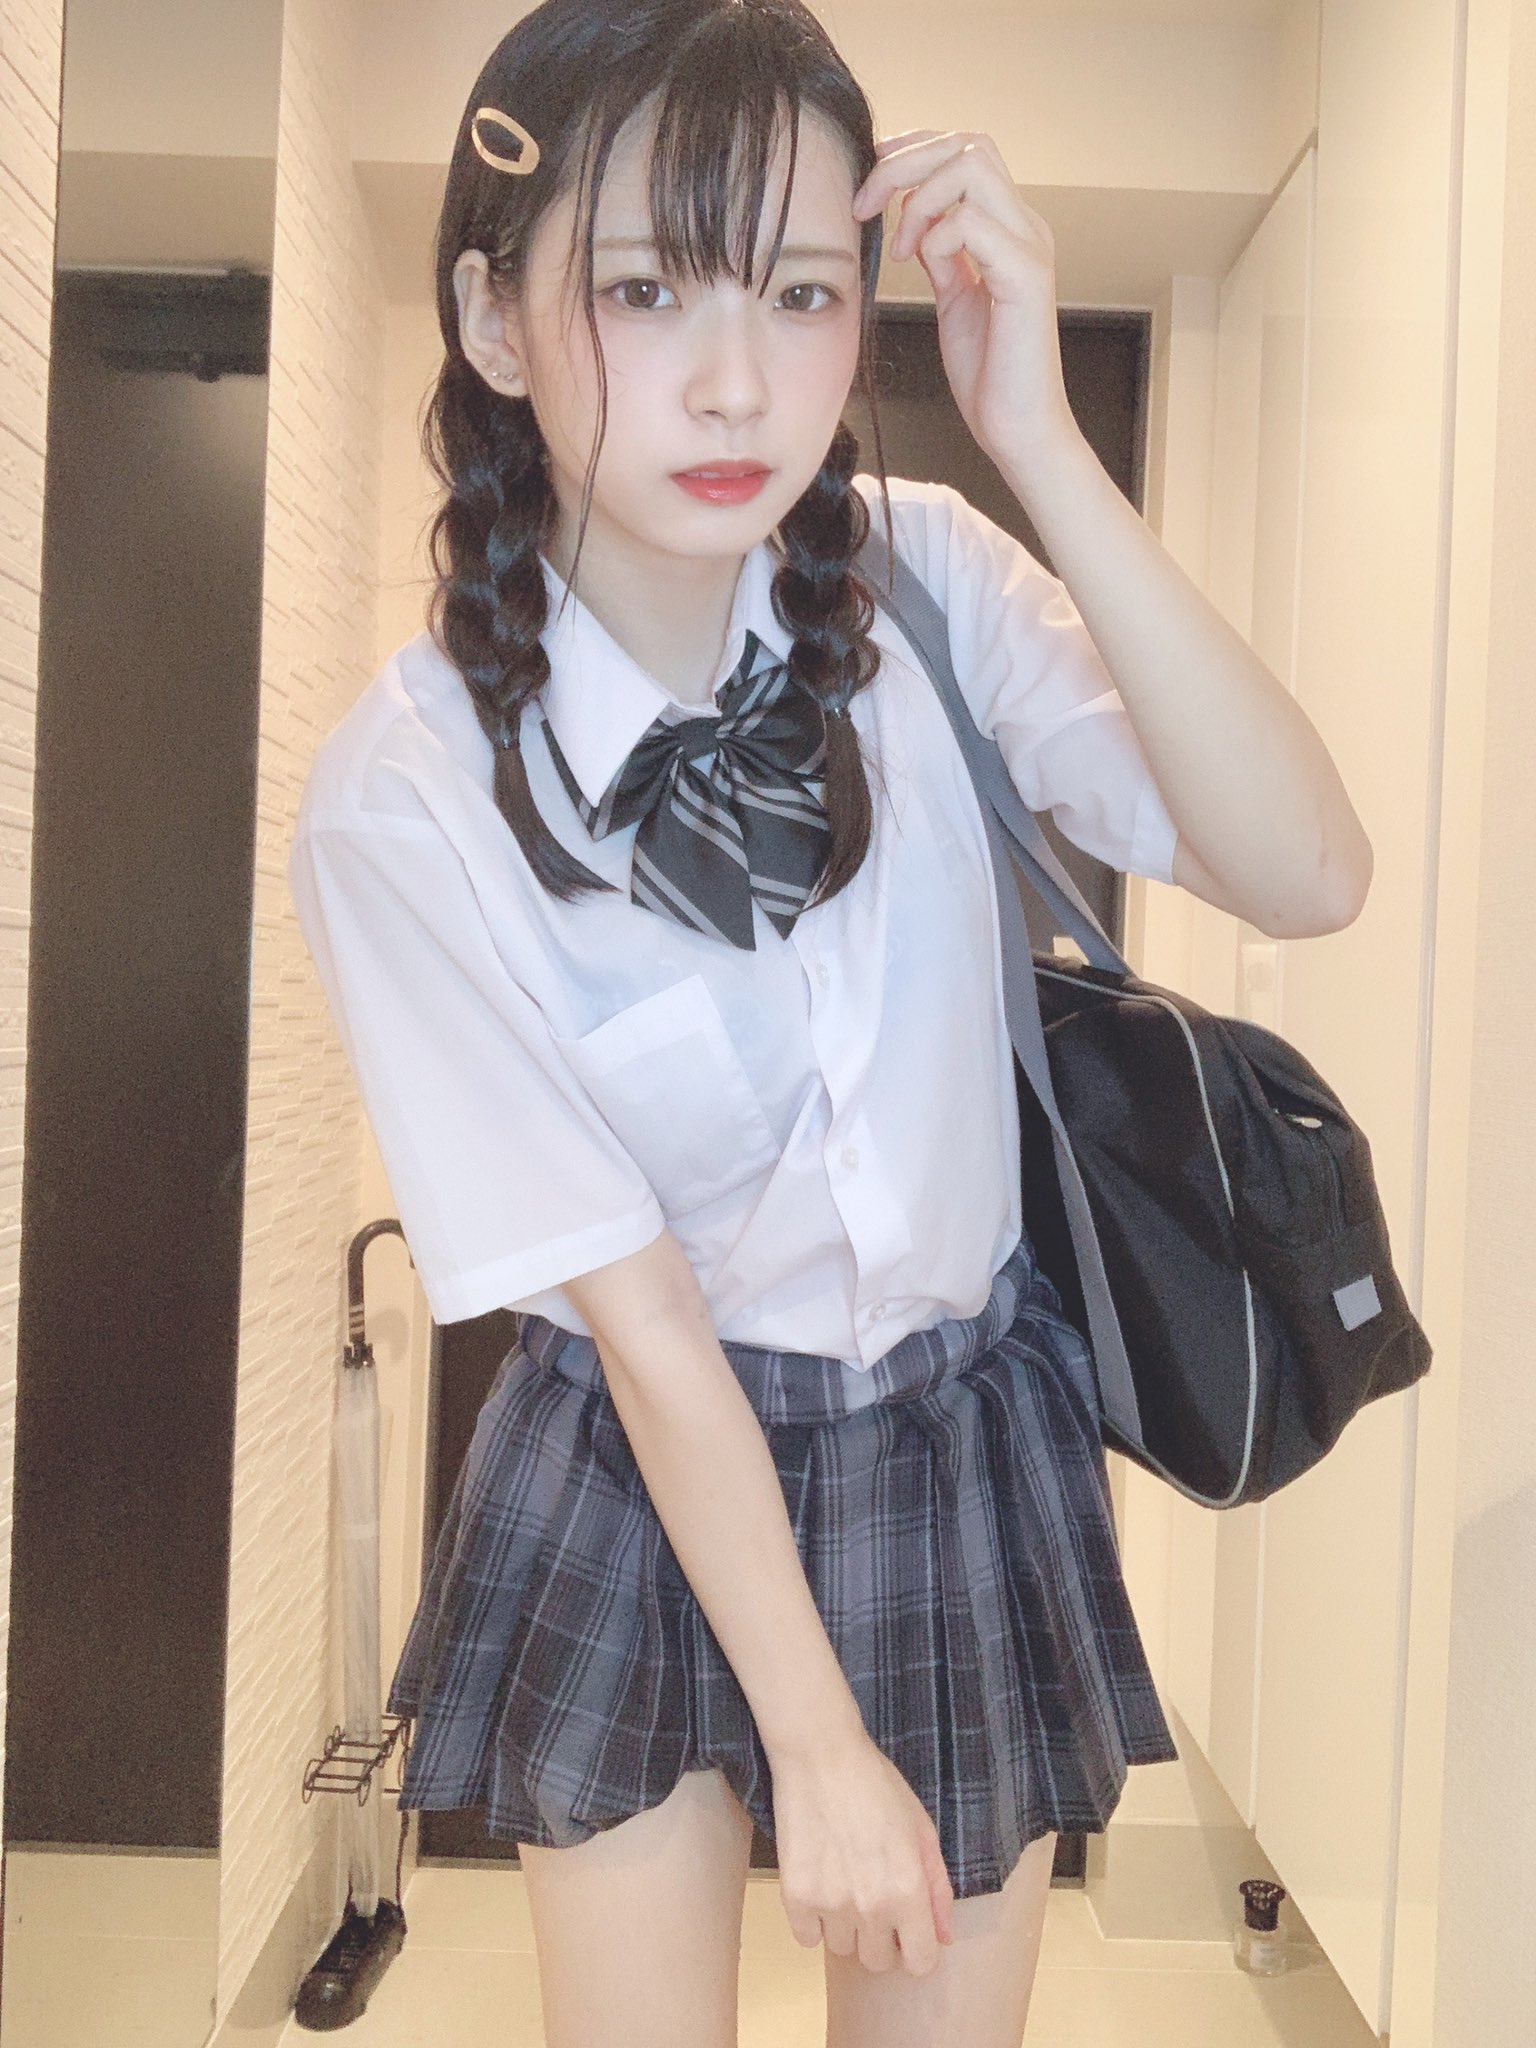 把水手服制服都弄濕了! #水手服 #制服美少女》#Cute #Girl #Pretty #Girls #漂亮 #可愛 #青春活力